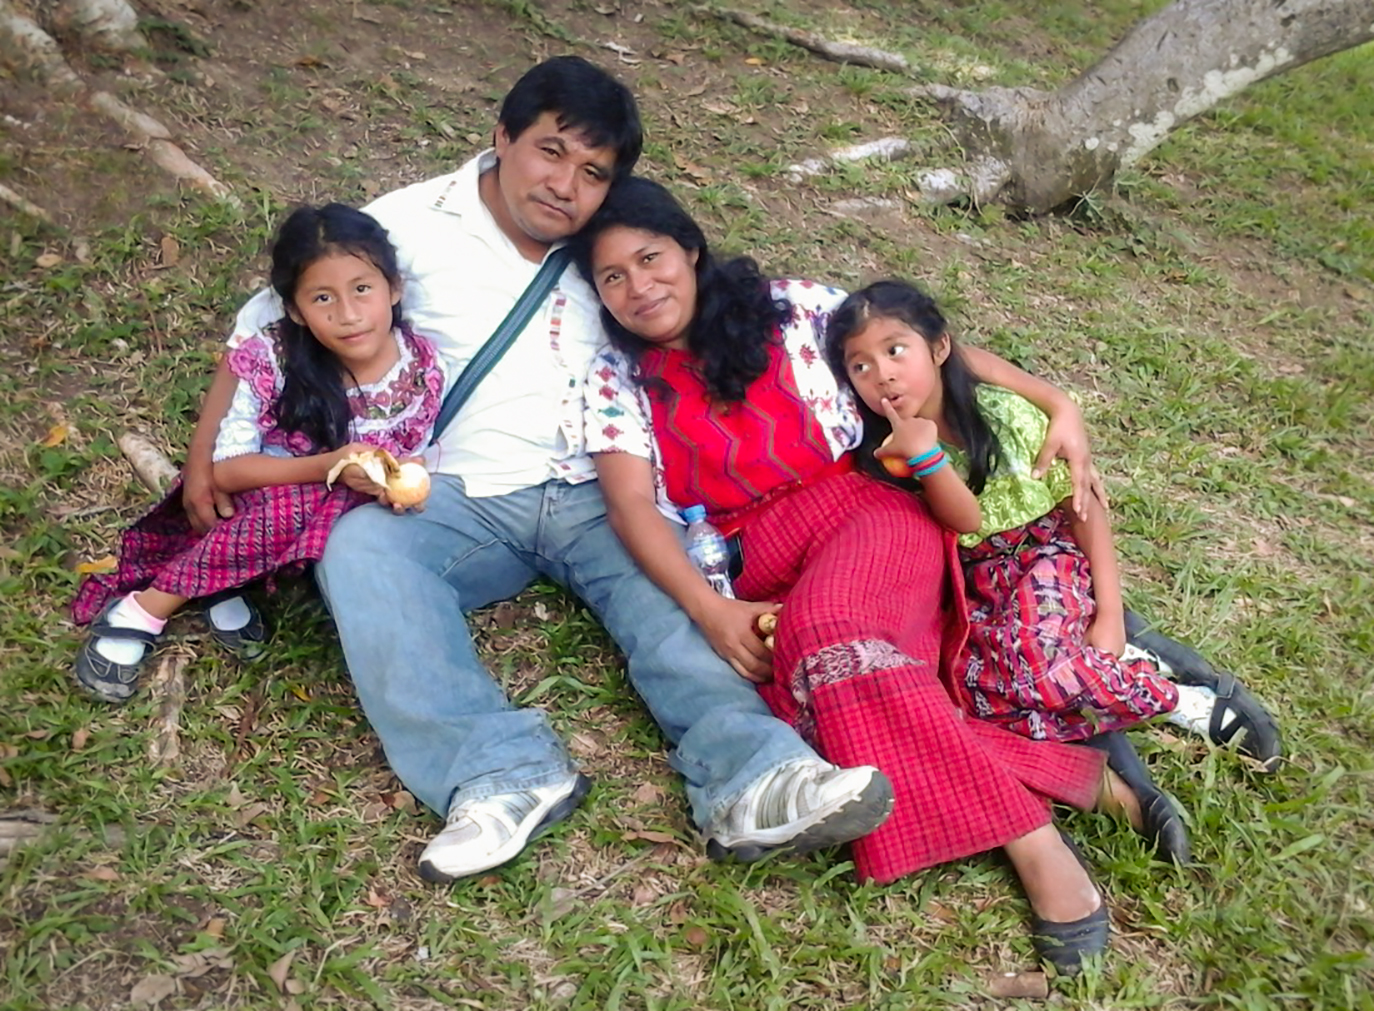 Bernardo Caal and his family